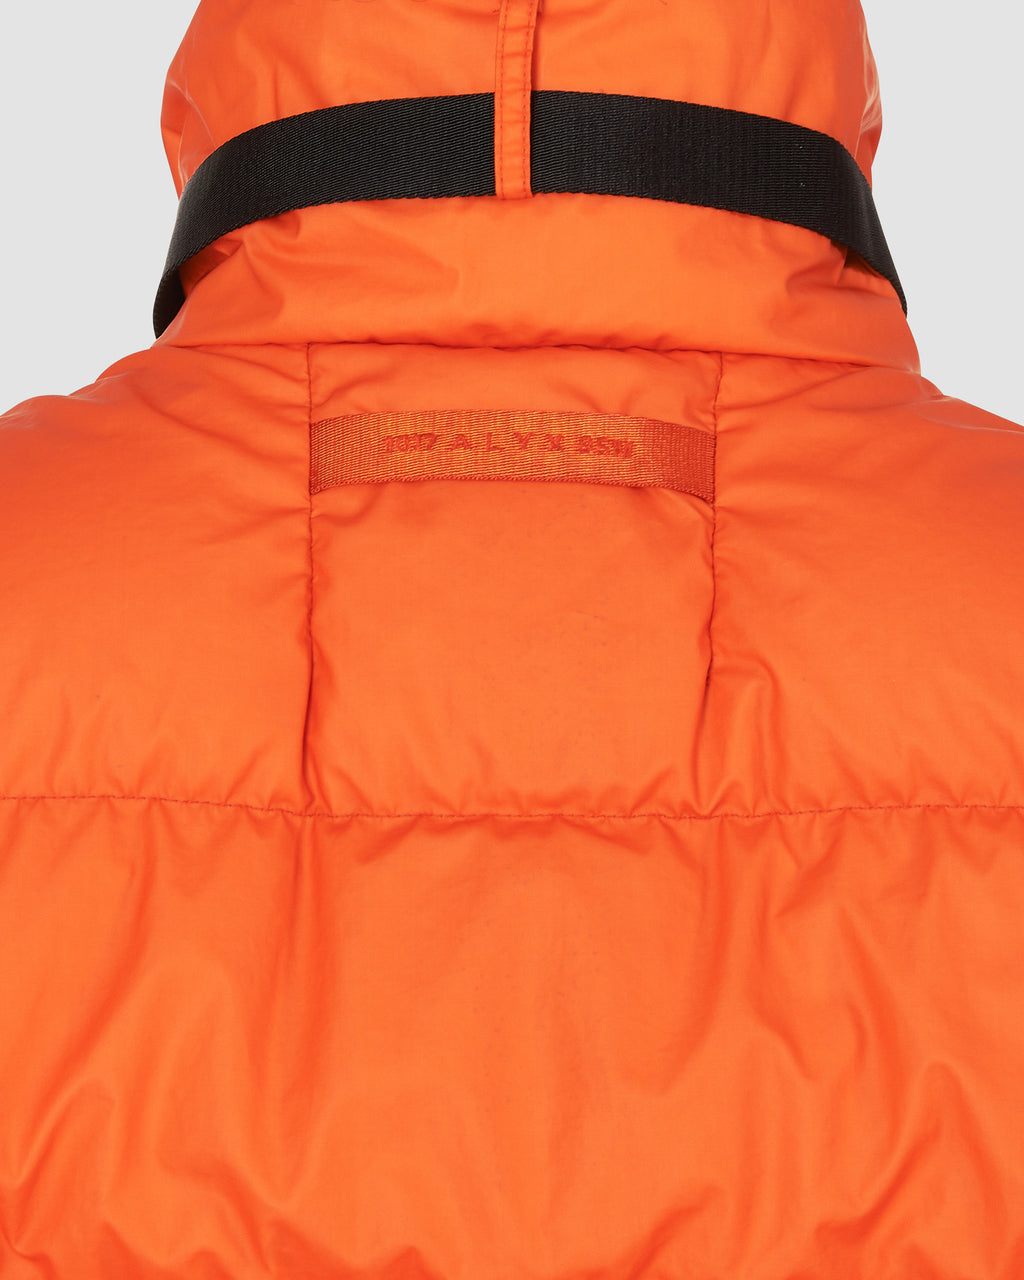 1017 ALYX 9SM | MONCLER DEIMOS JACKET | Outerwear | Google Shopping, Man, Moncler, ORANGE, OUTERWEAR, S20, UNISEX